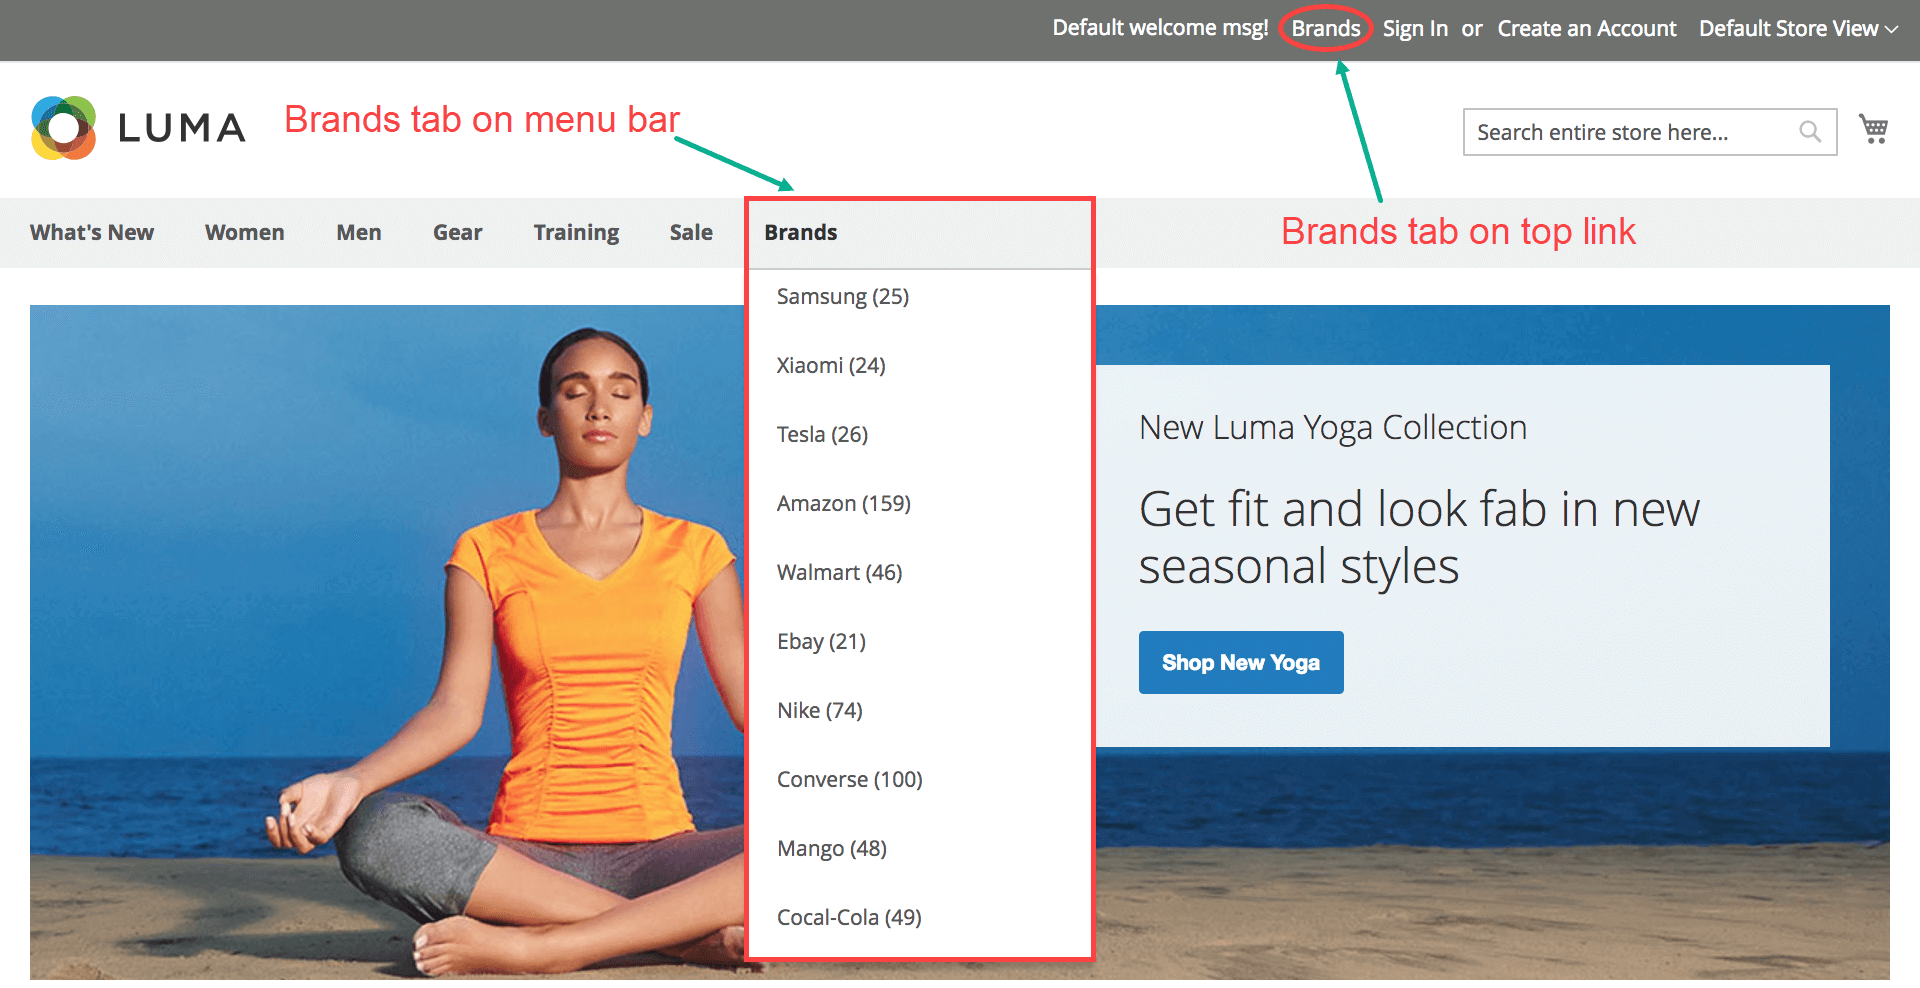 Magento 2 Shop By Brand - Access brand listing page from menu bar & top link